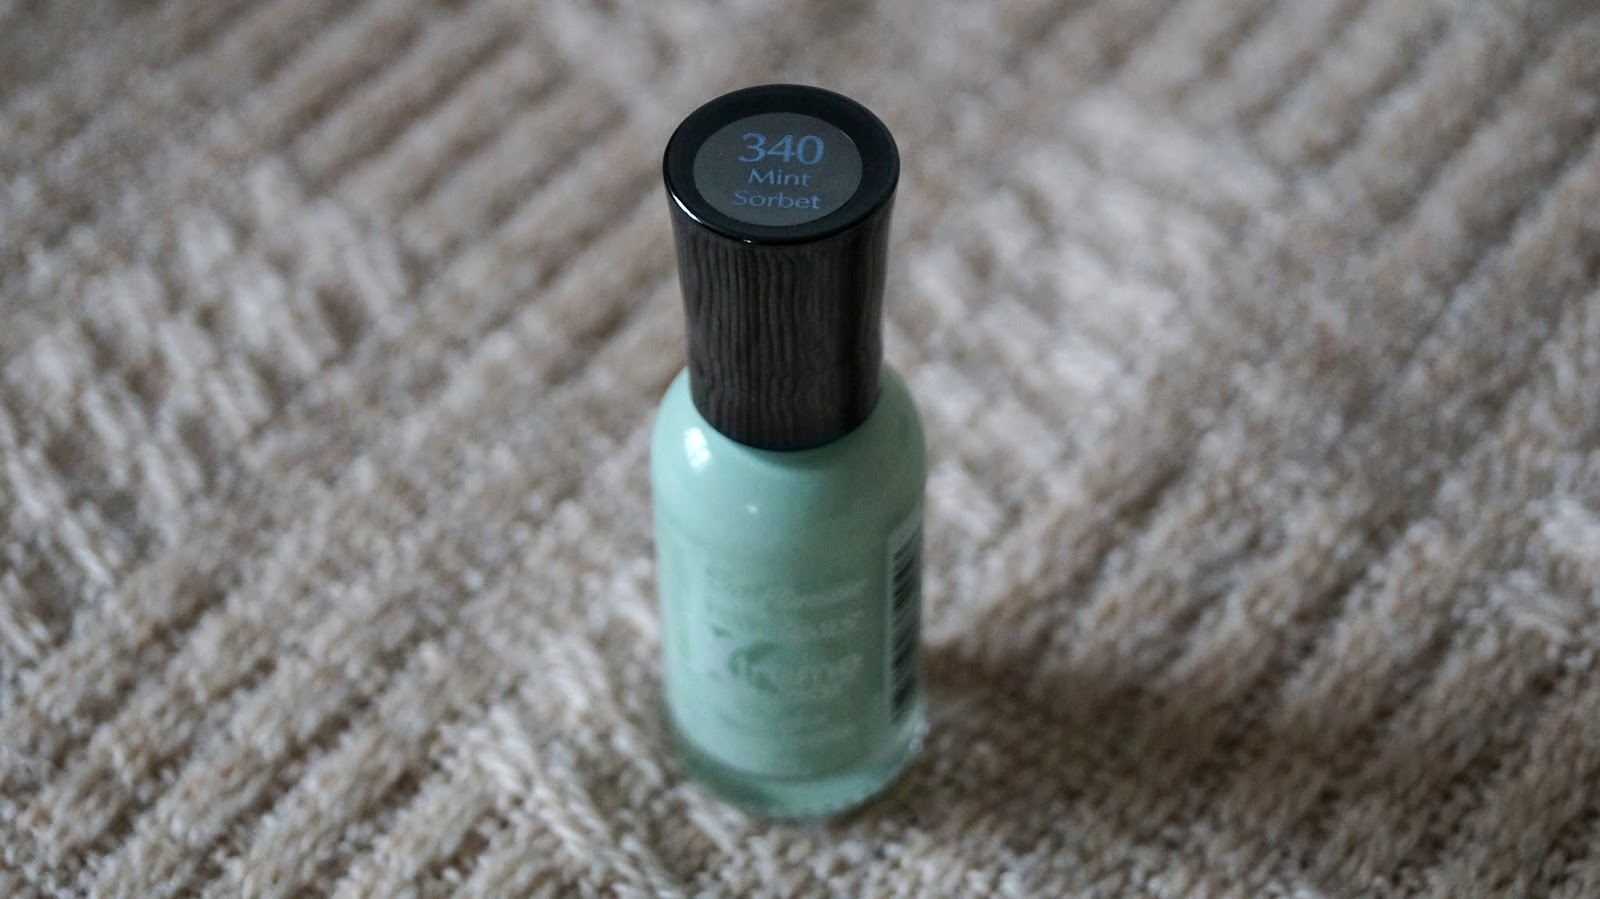 Miętowy sorbet - Sally Hansen Xtream wear 340 Mint Sorbet